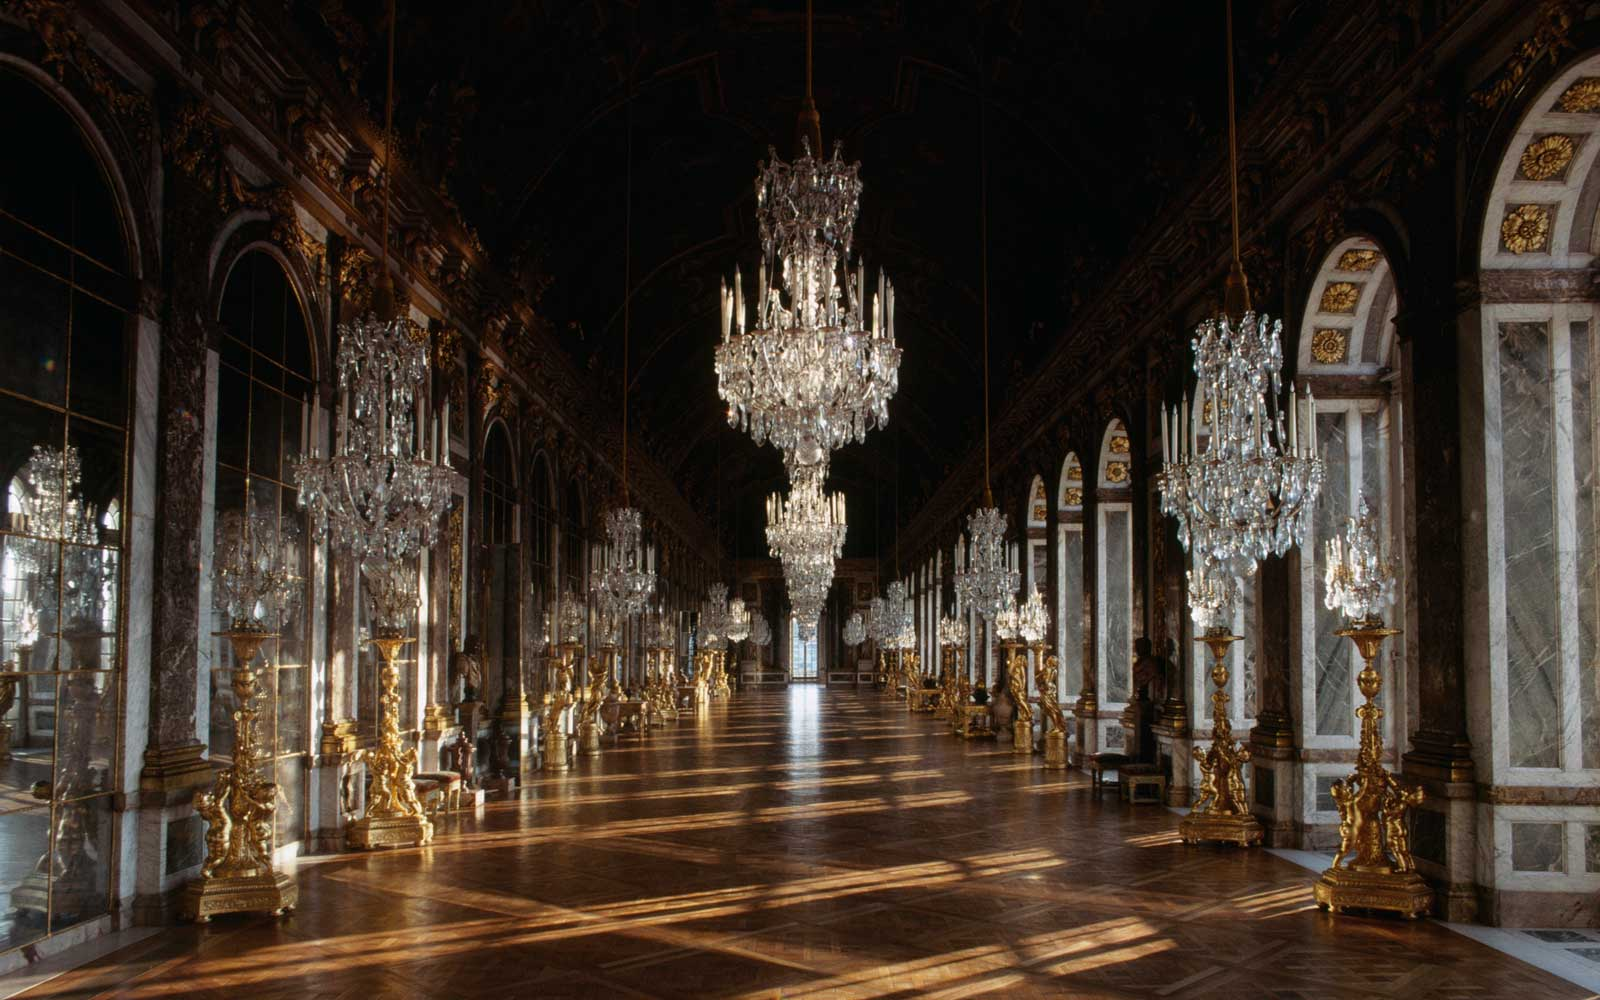 Hall of Mirrors, Palace of Versailles (UNESCO World Heritage List, 1979), Ile-de-France, France, 17th century